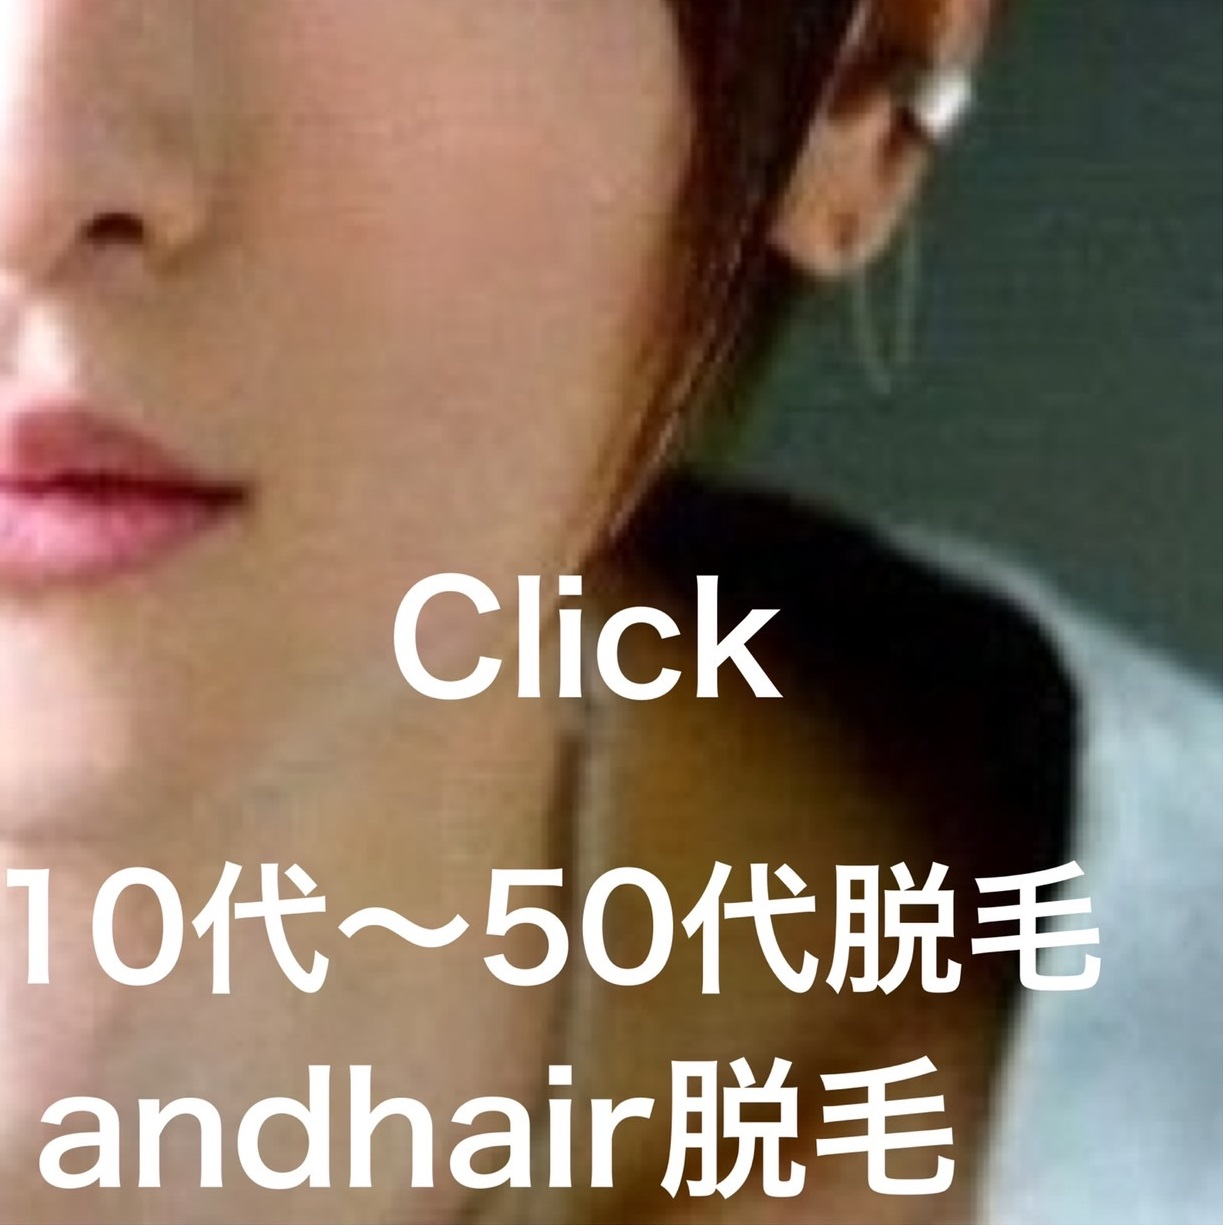 andhair脱毛